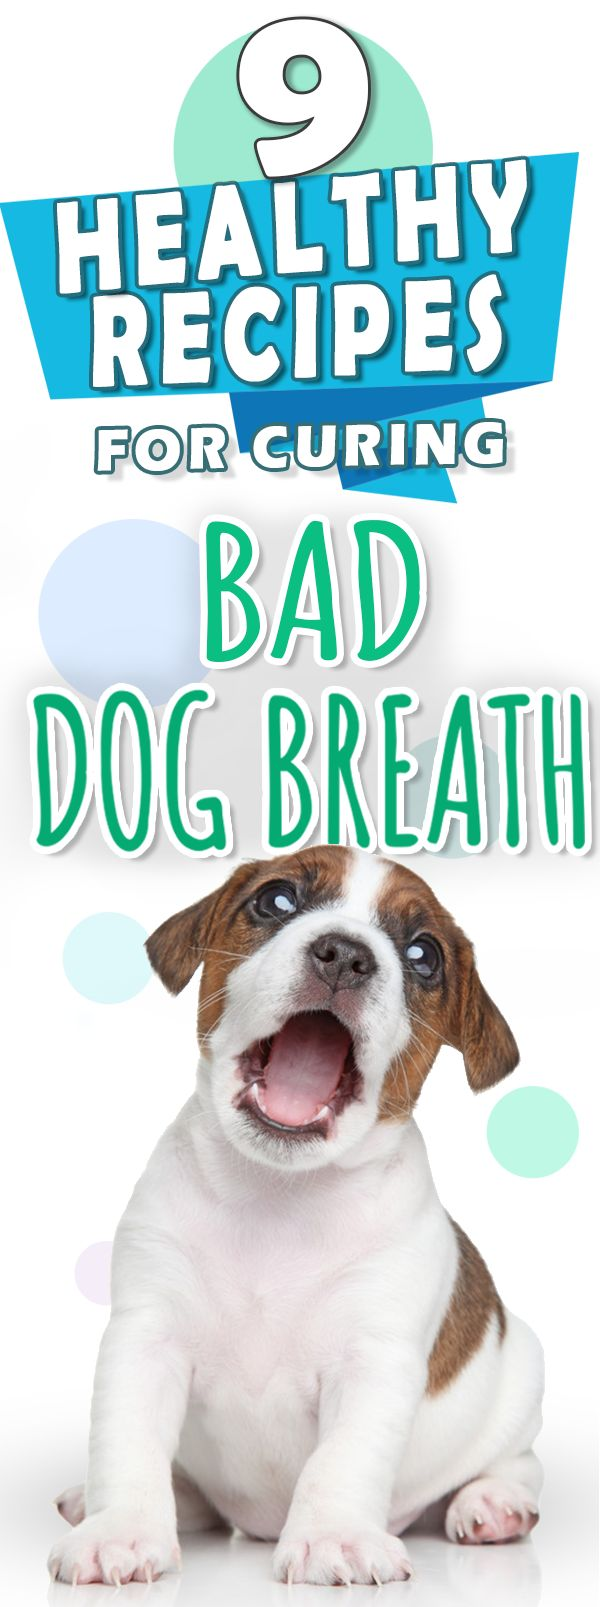 How do you remedy bad dog breath? Simple - with a few super easy dog treat recipes that are healthy and freshen up their breath!